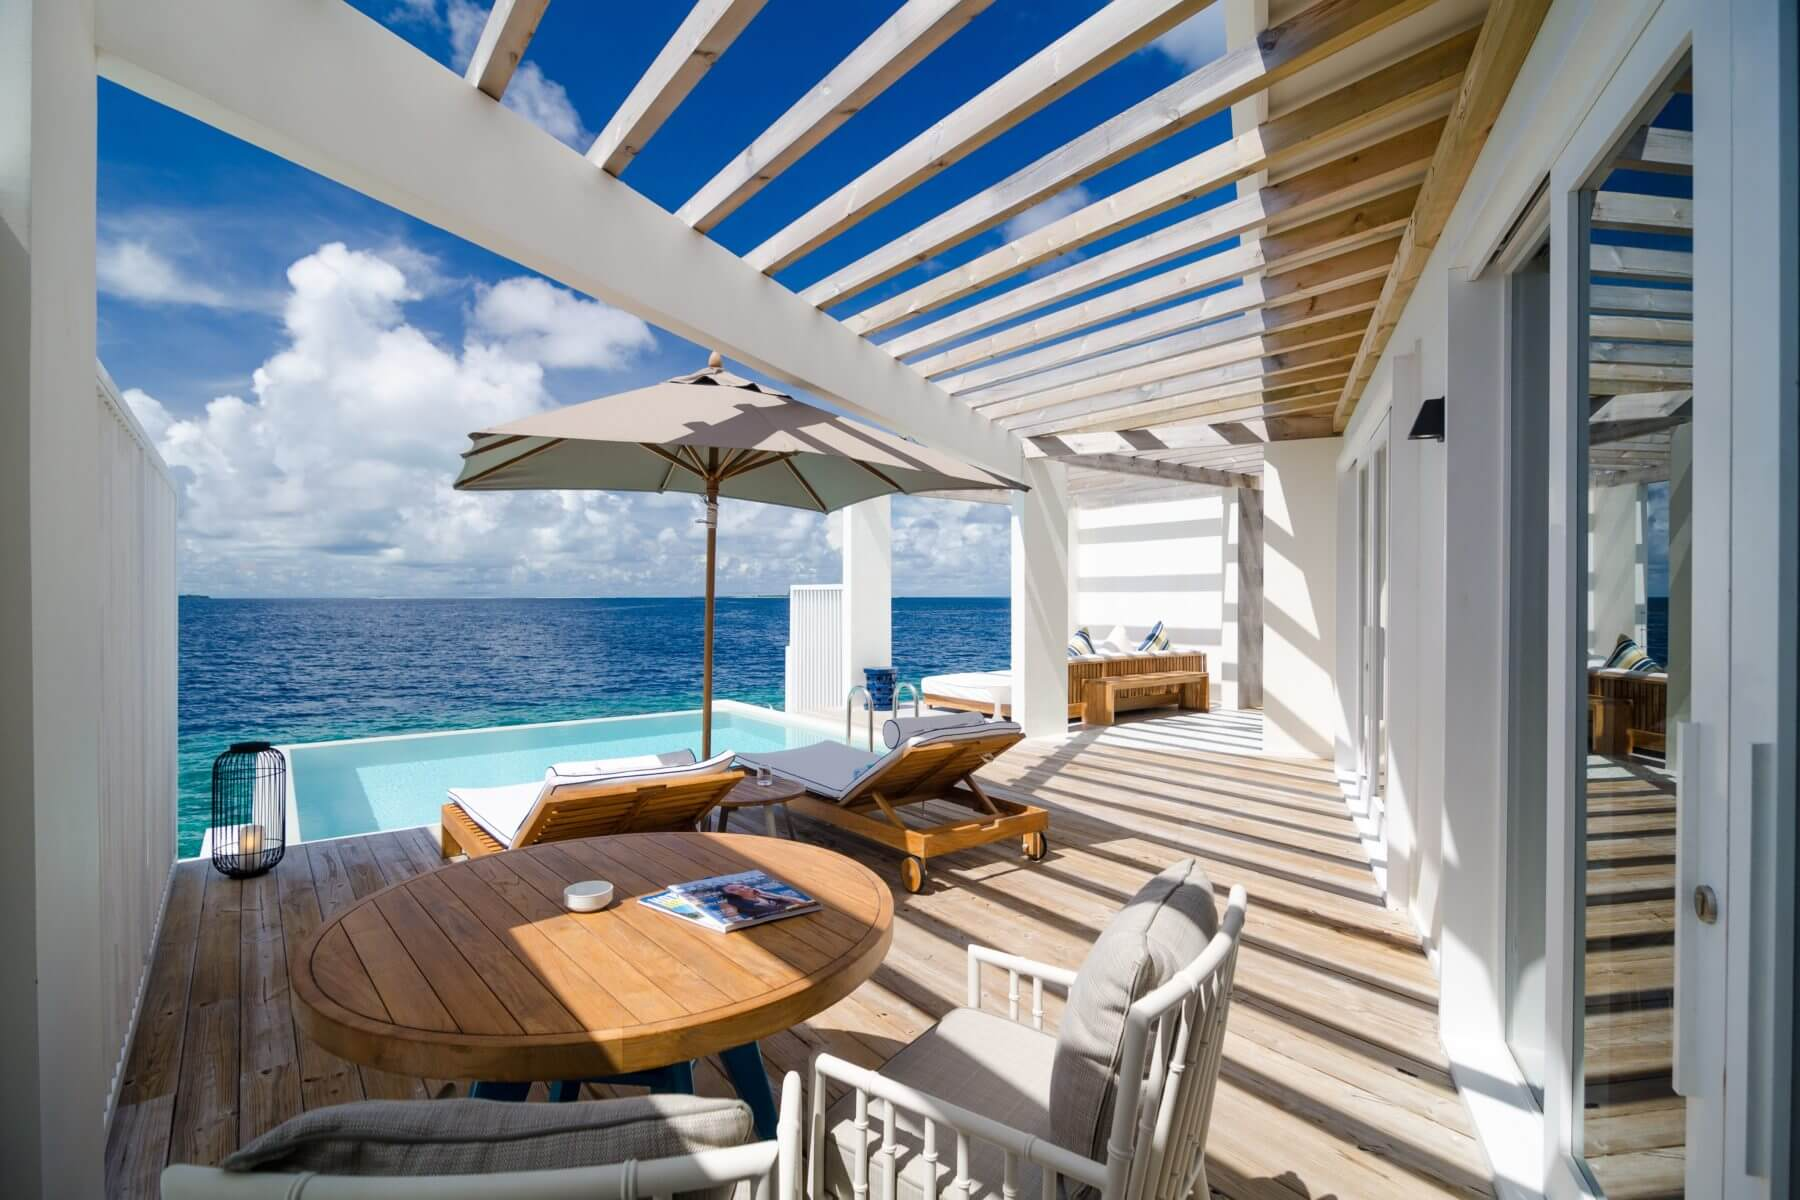 Amilla Maldives Resort and Residences is proudly Maldivian owned and operated